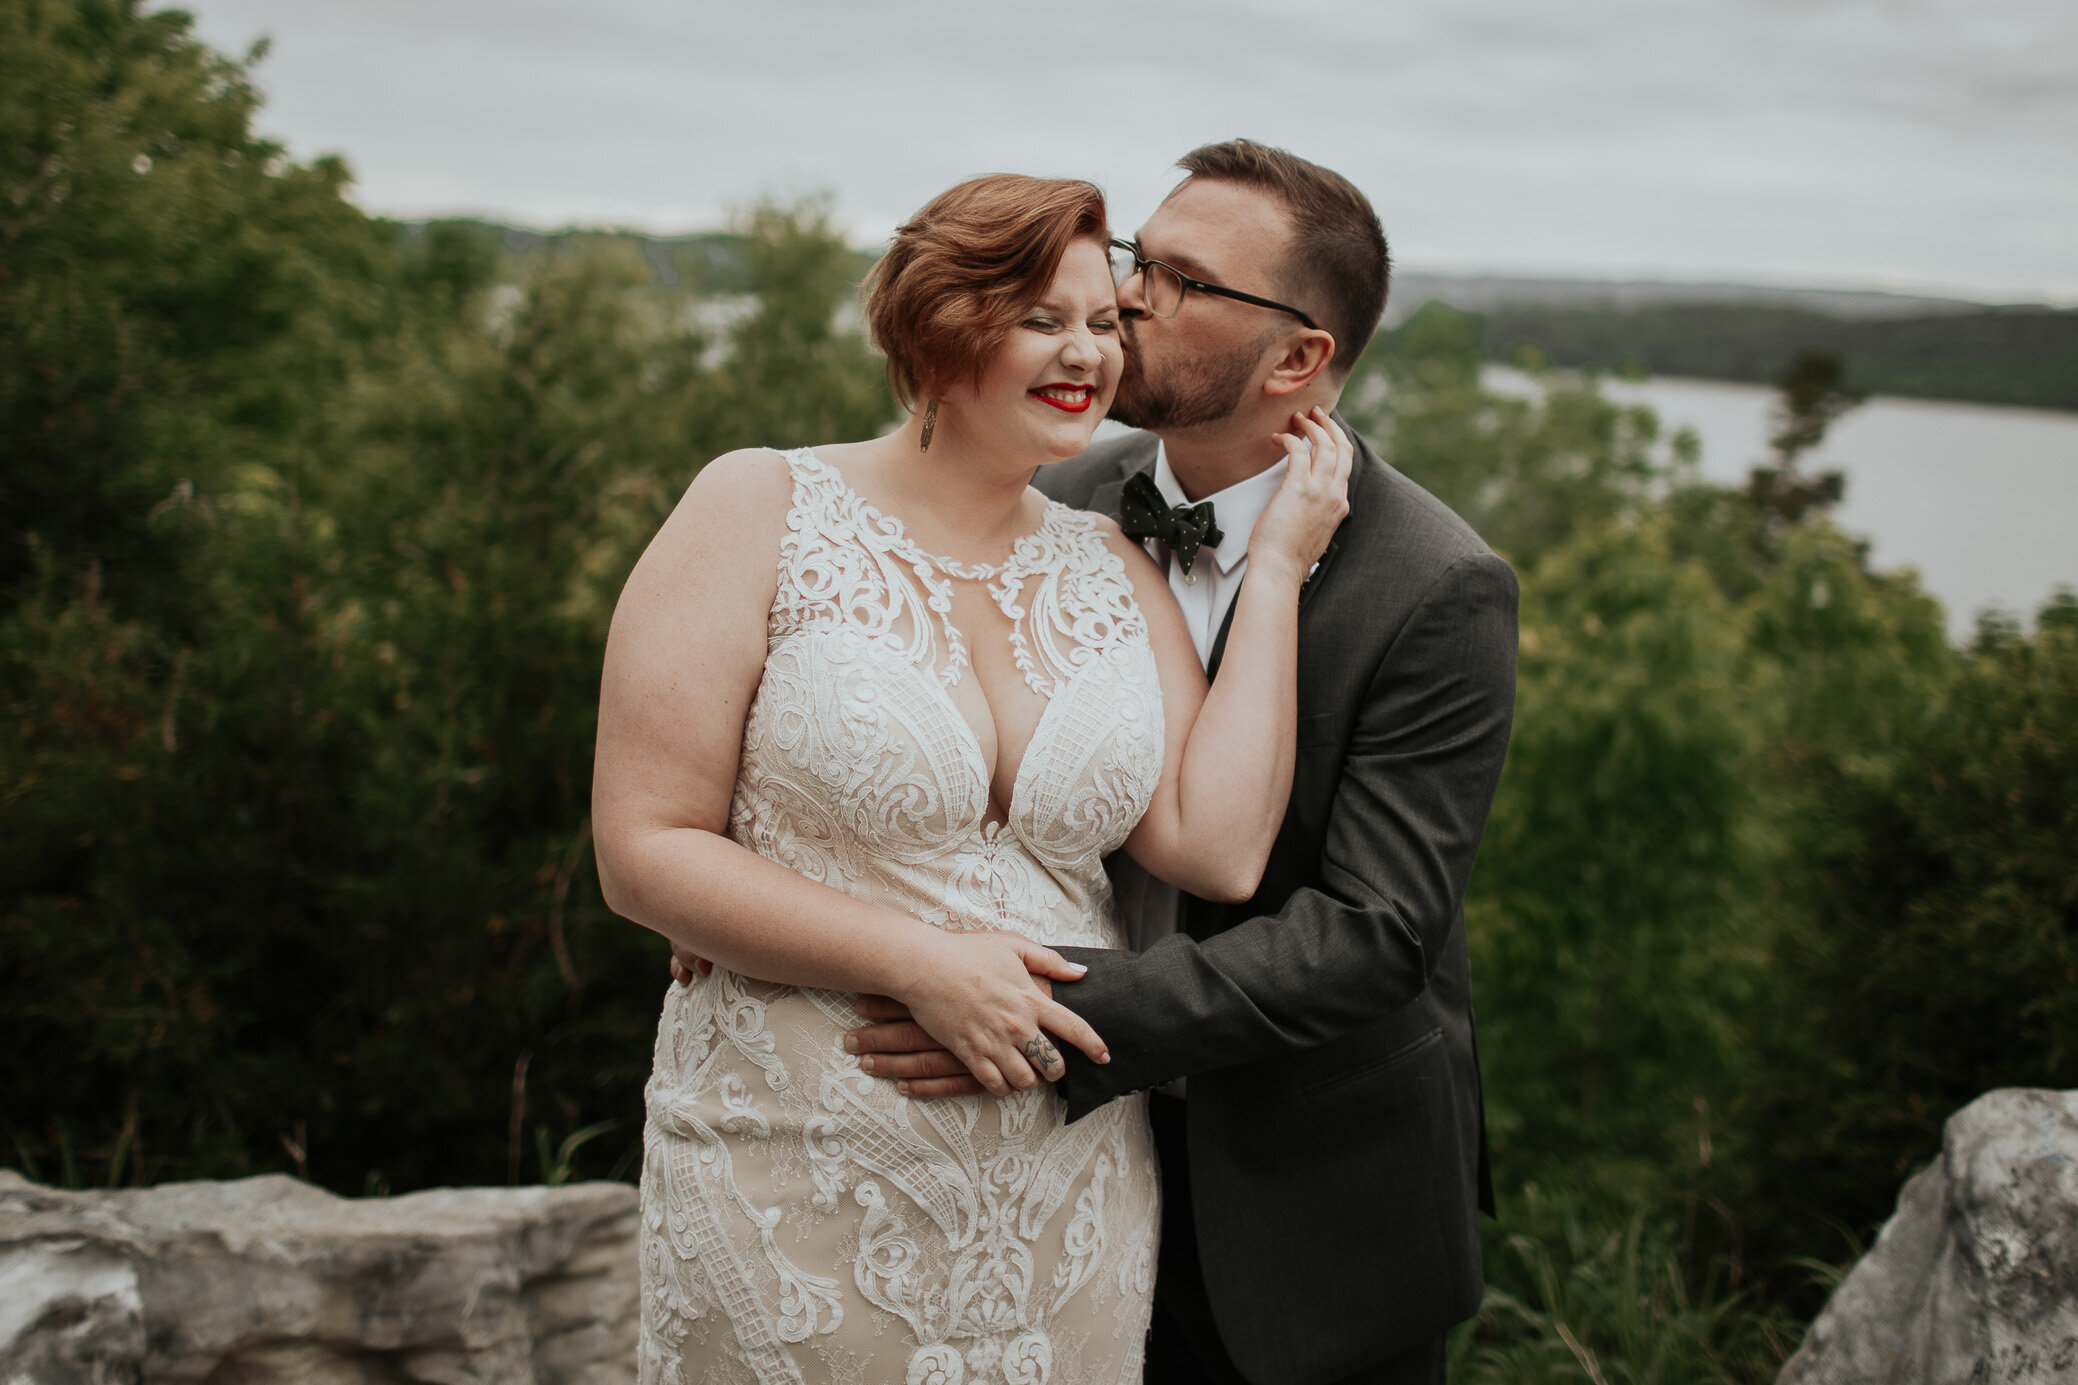 Wedding photography and elopement photography pricing info for the Astoria, Oregon area. Rates start at just $1,800.